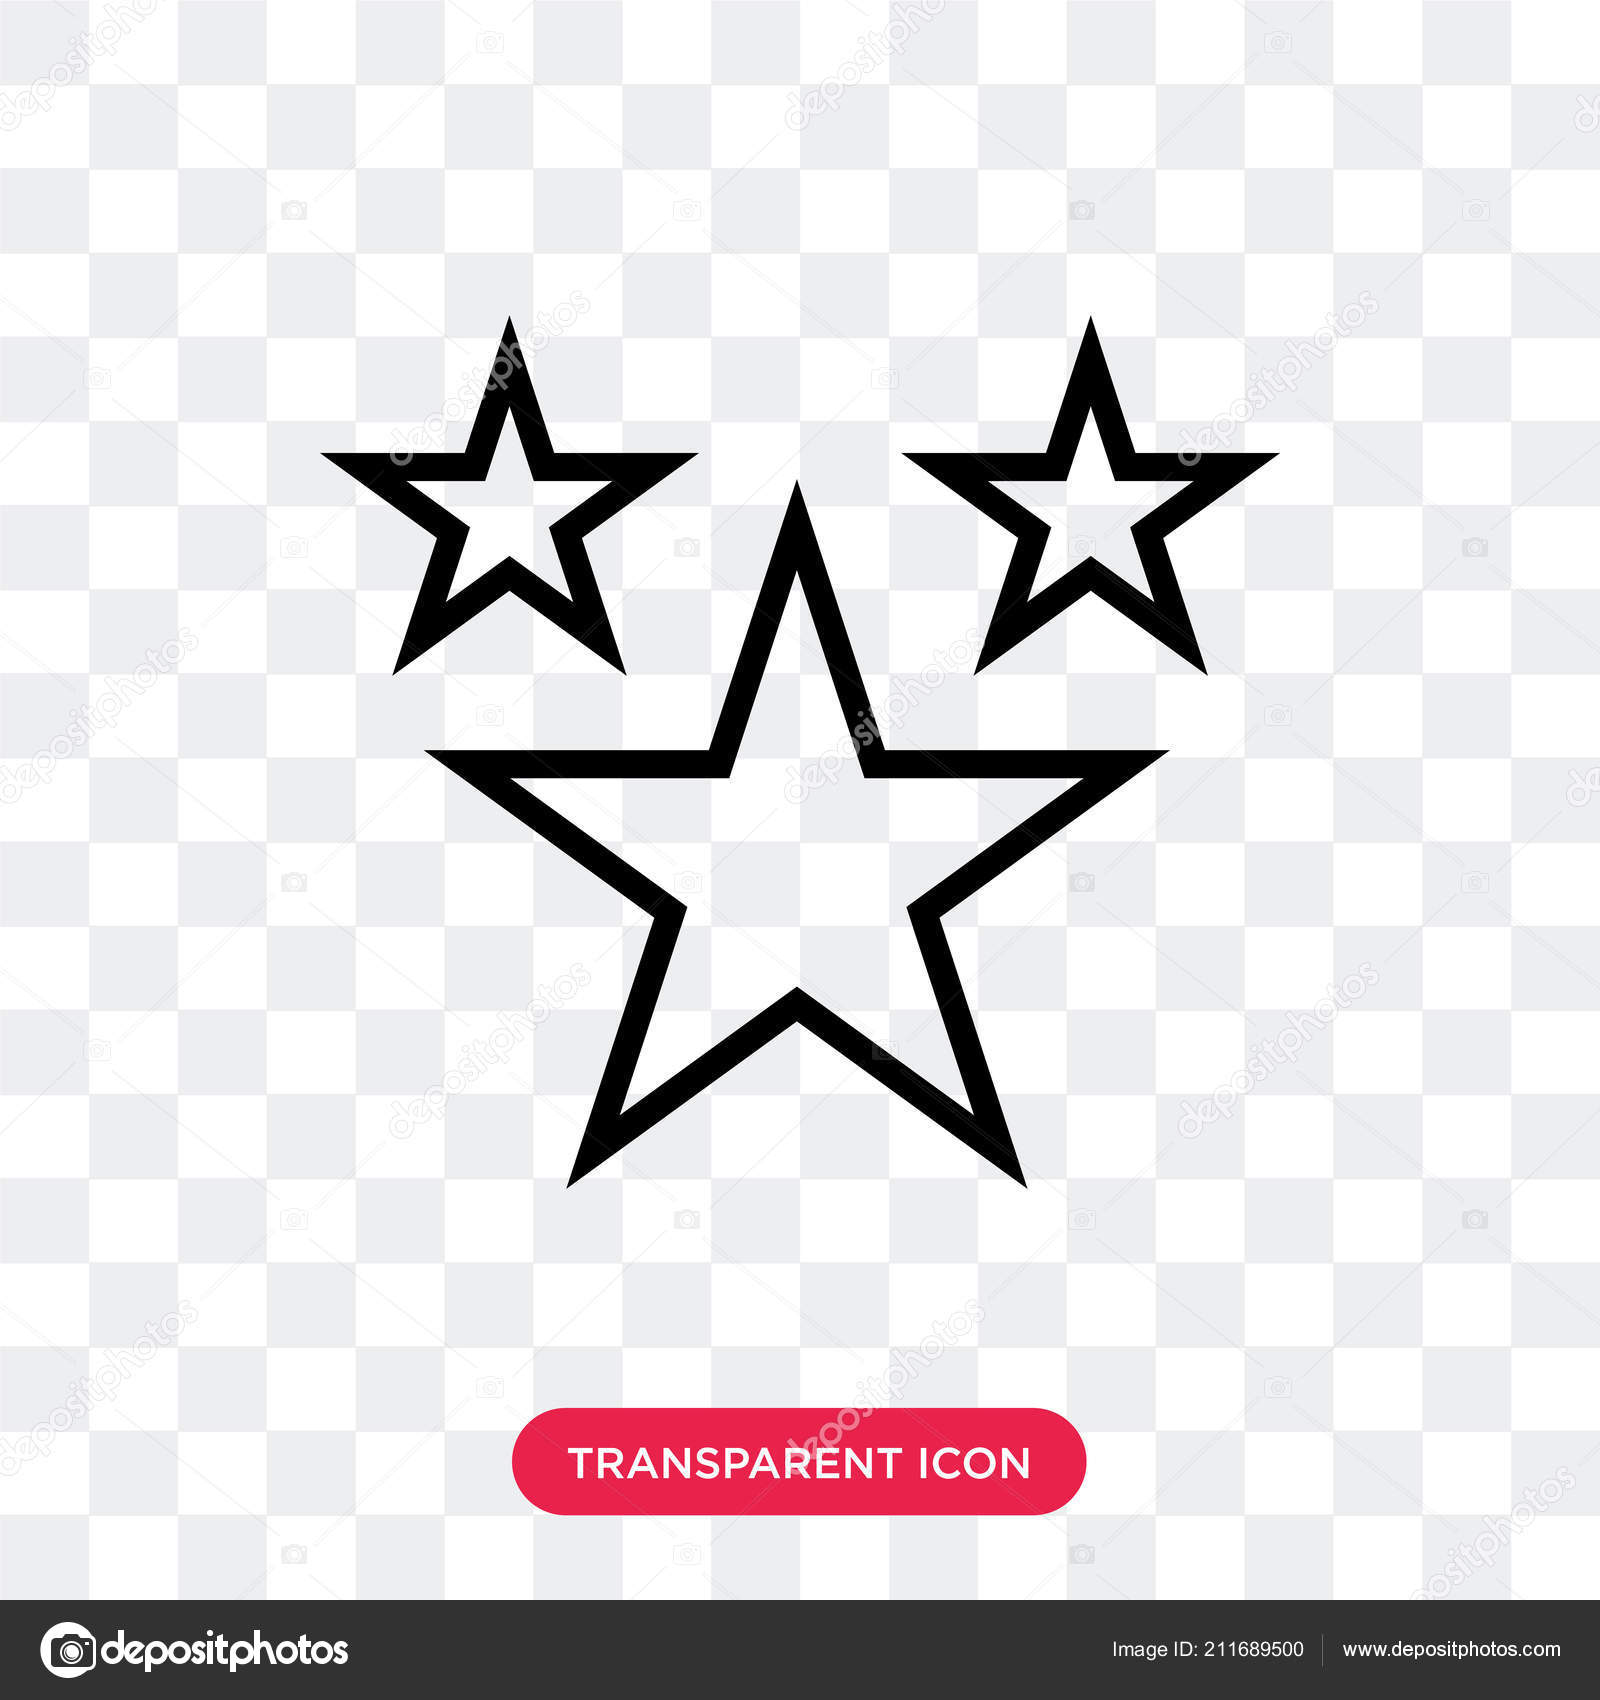 Stars vector icon isolated on transparent background, Stars logo.